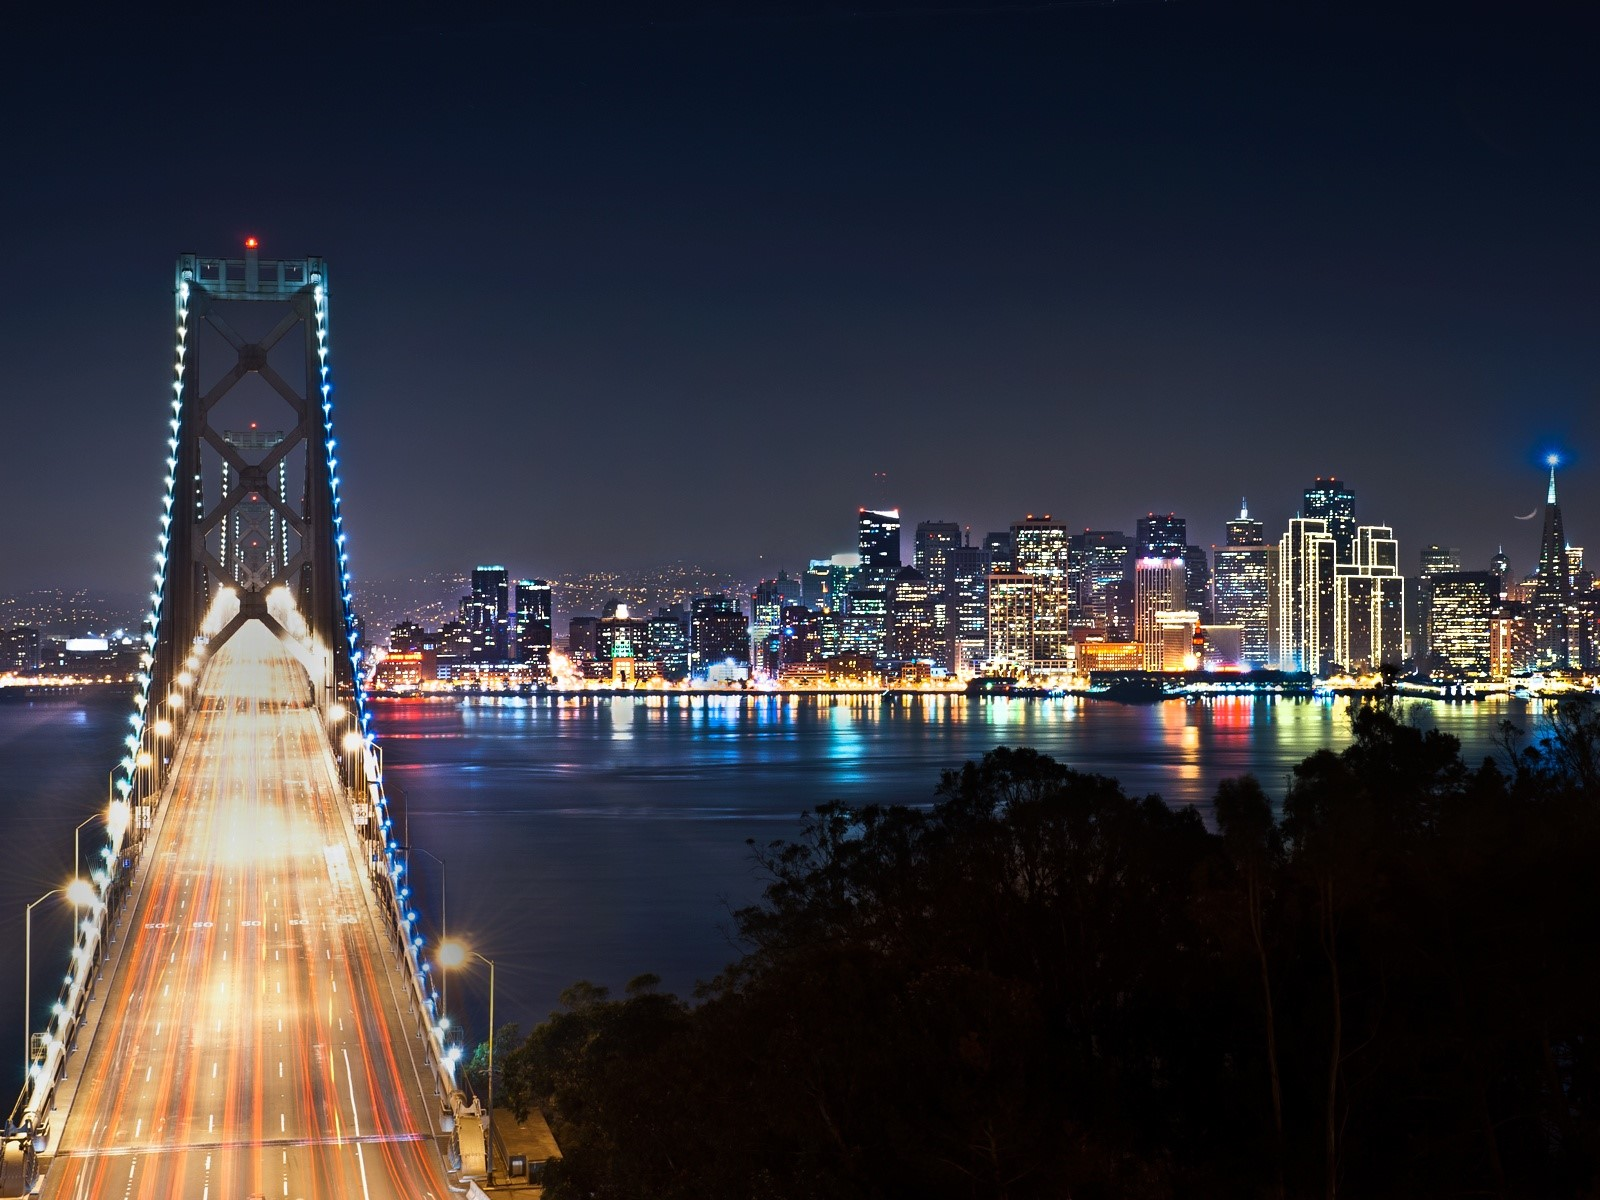 San Francisco At Night Wallpaper Id1126